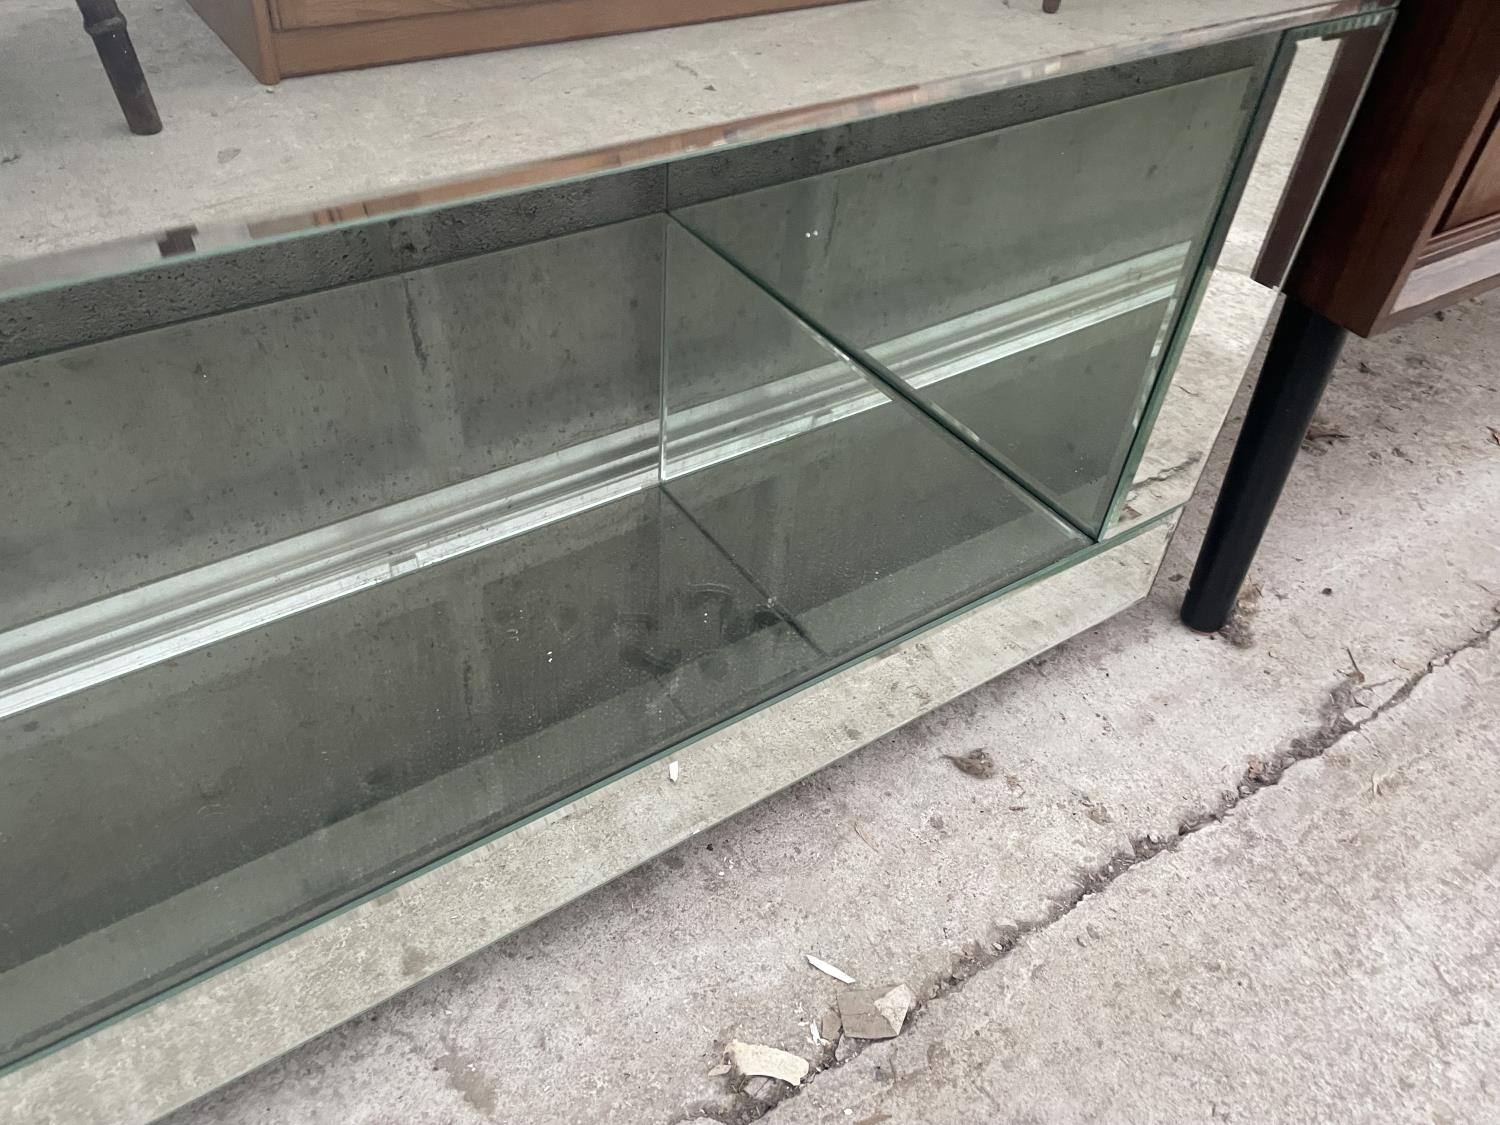 """A MODERN MIRRORED COFFEE TABLE, 39"""" WIDE - Image 4 of 4"""